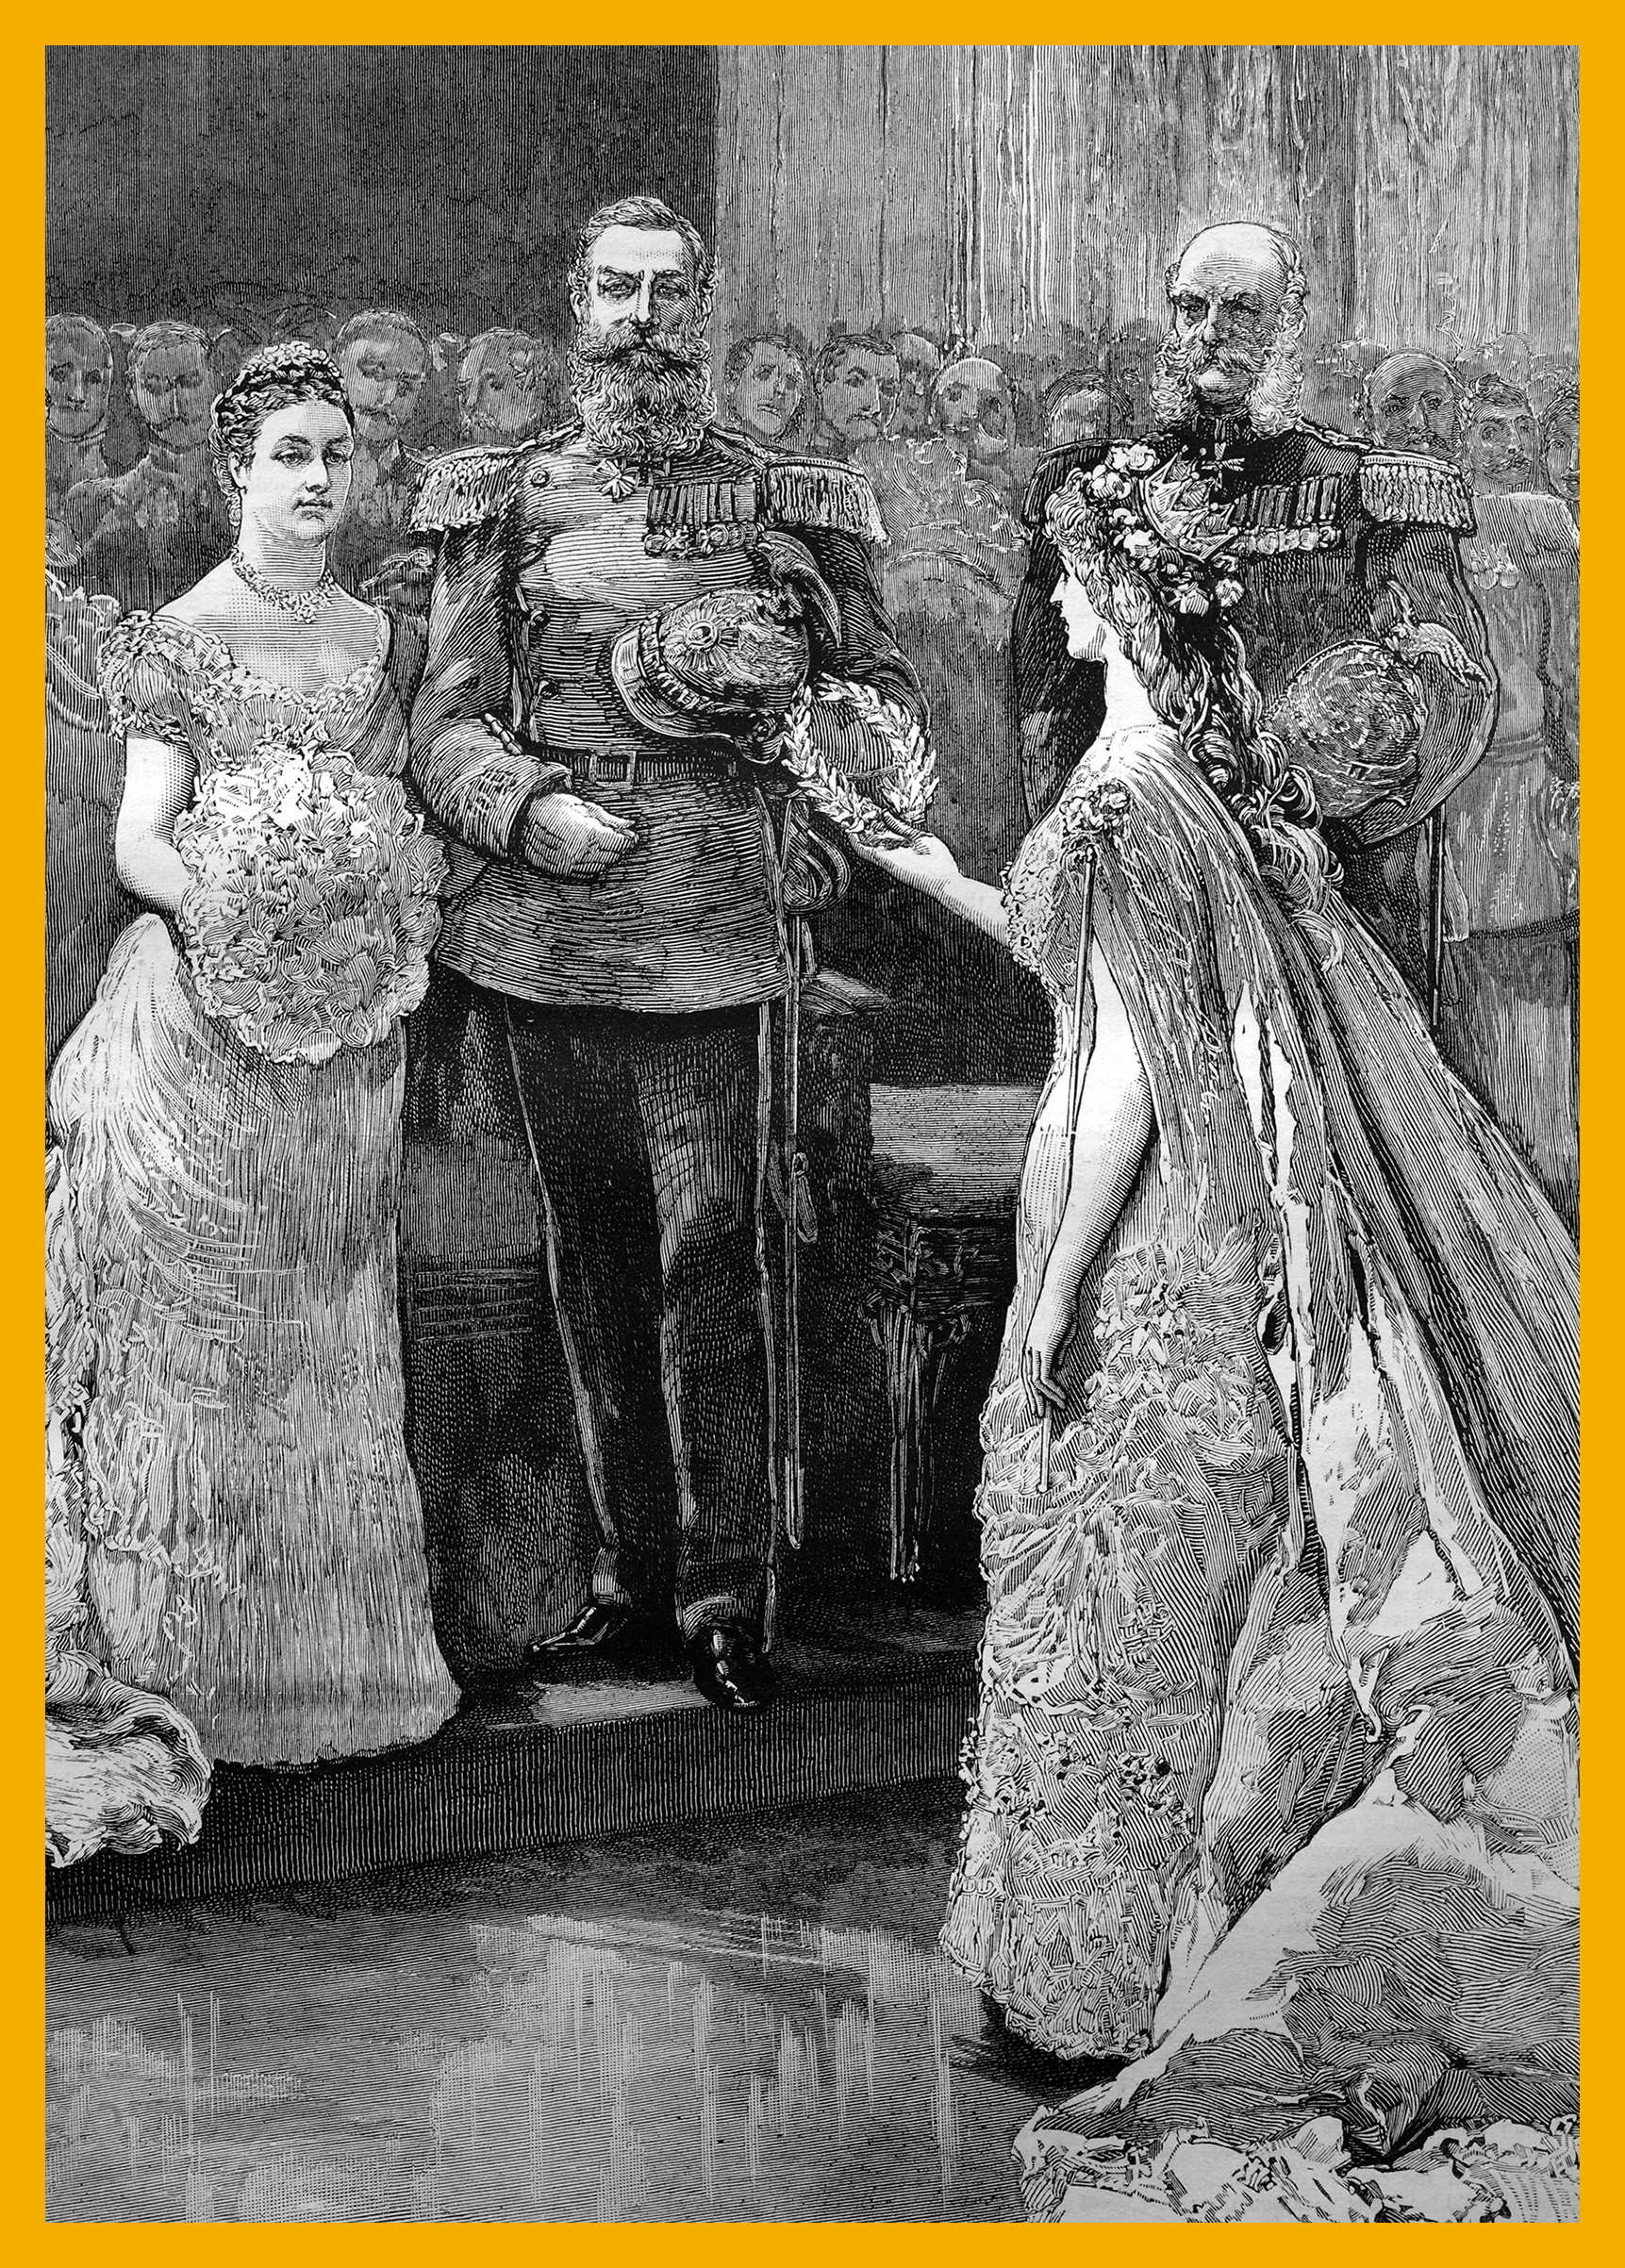 The silver wedding of the imperial prince and princess of Germany, the koenigin minne  or  queen of love  presenting a silver wreath to the imperial princess, historical illustration, 1884.